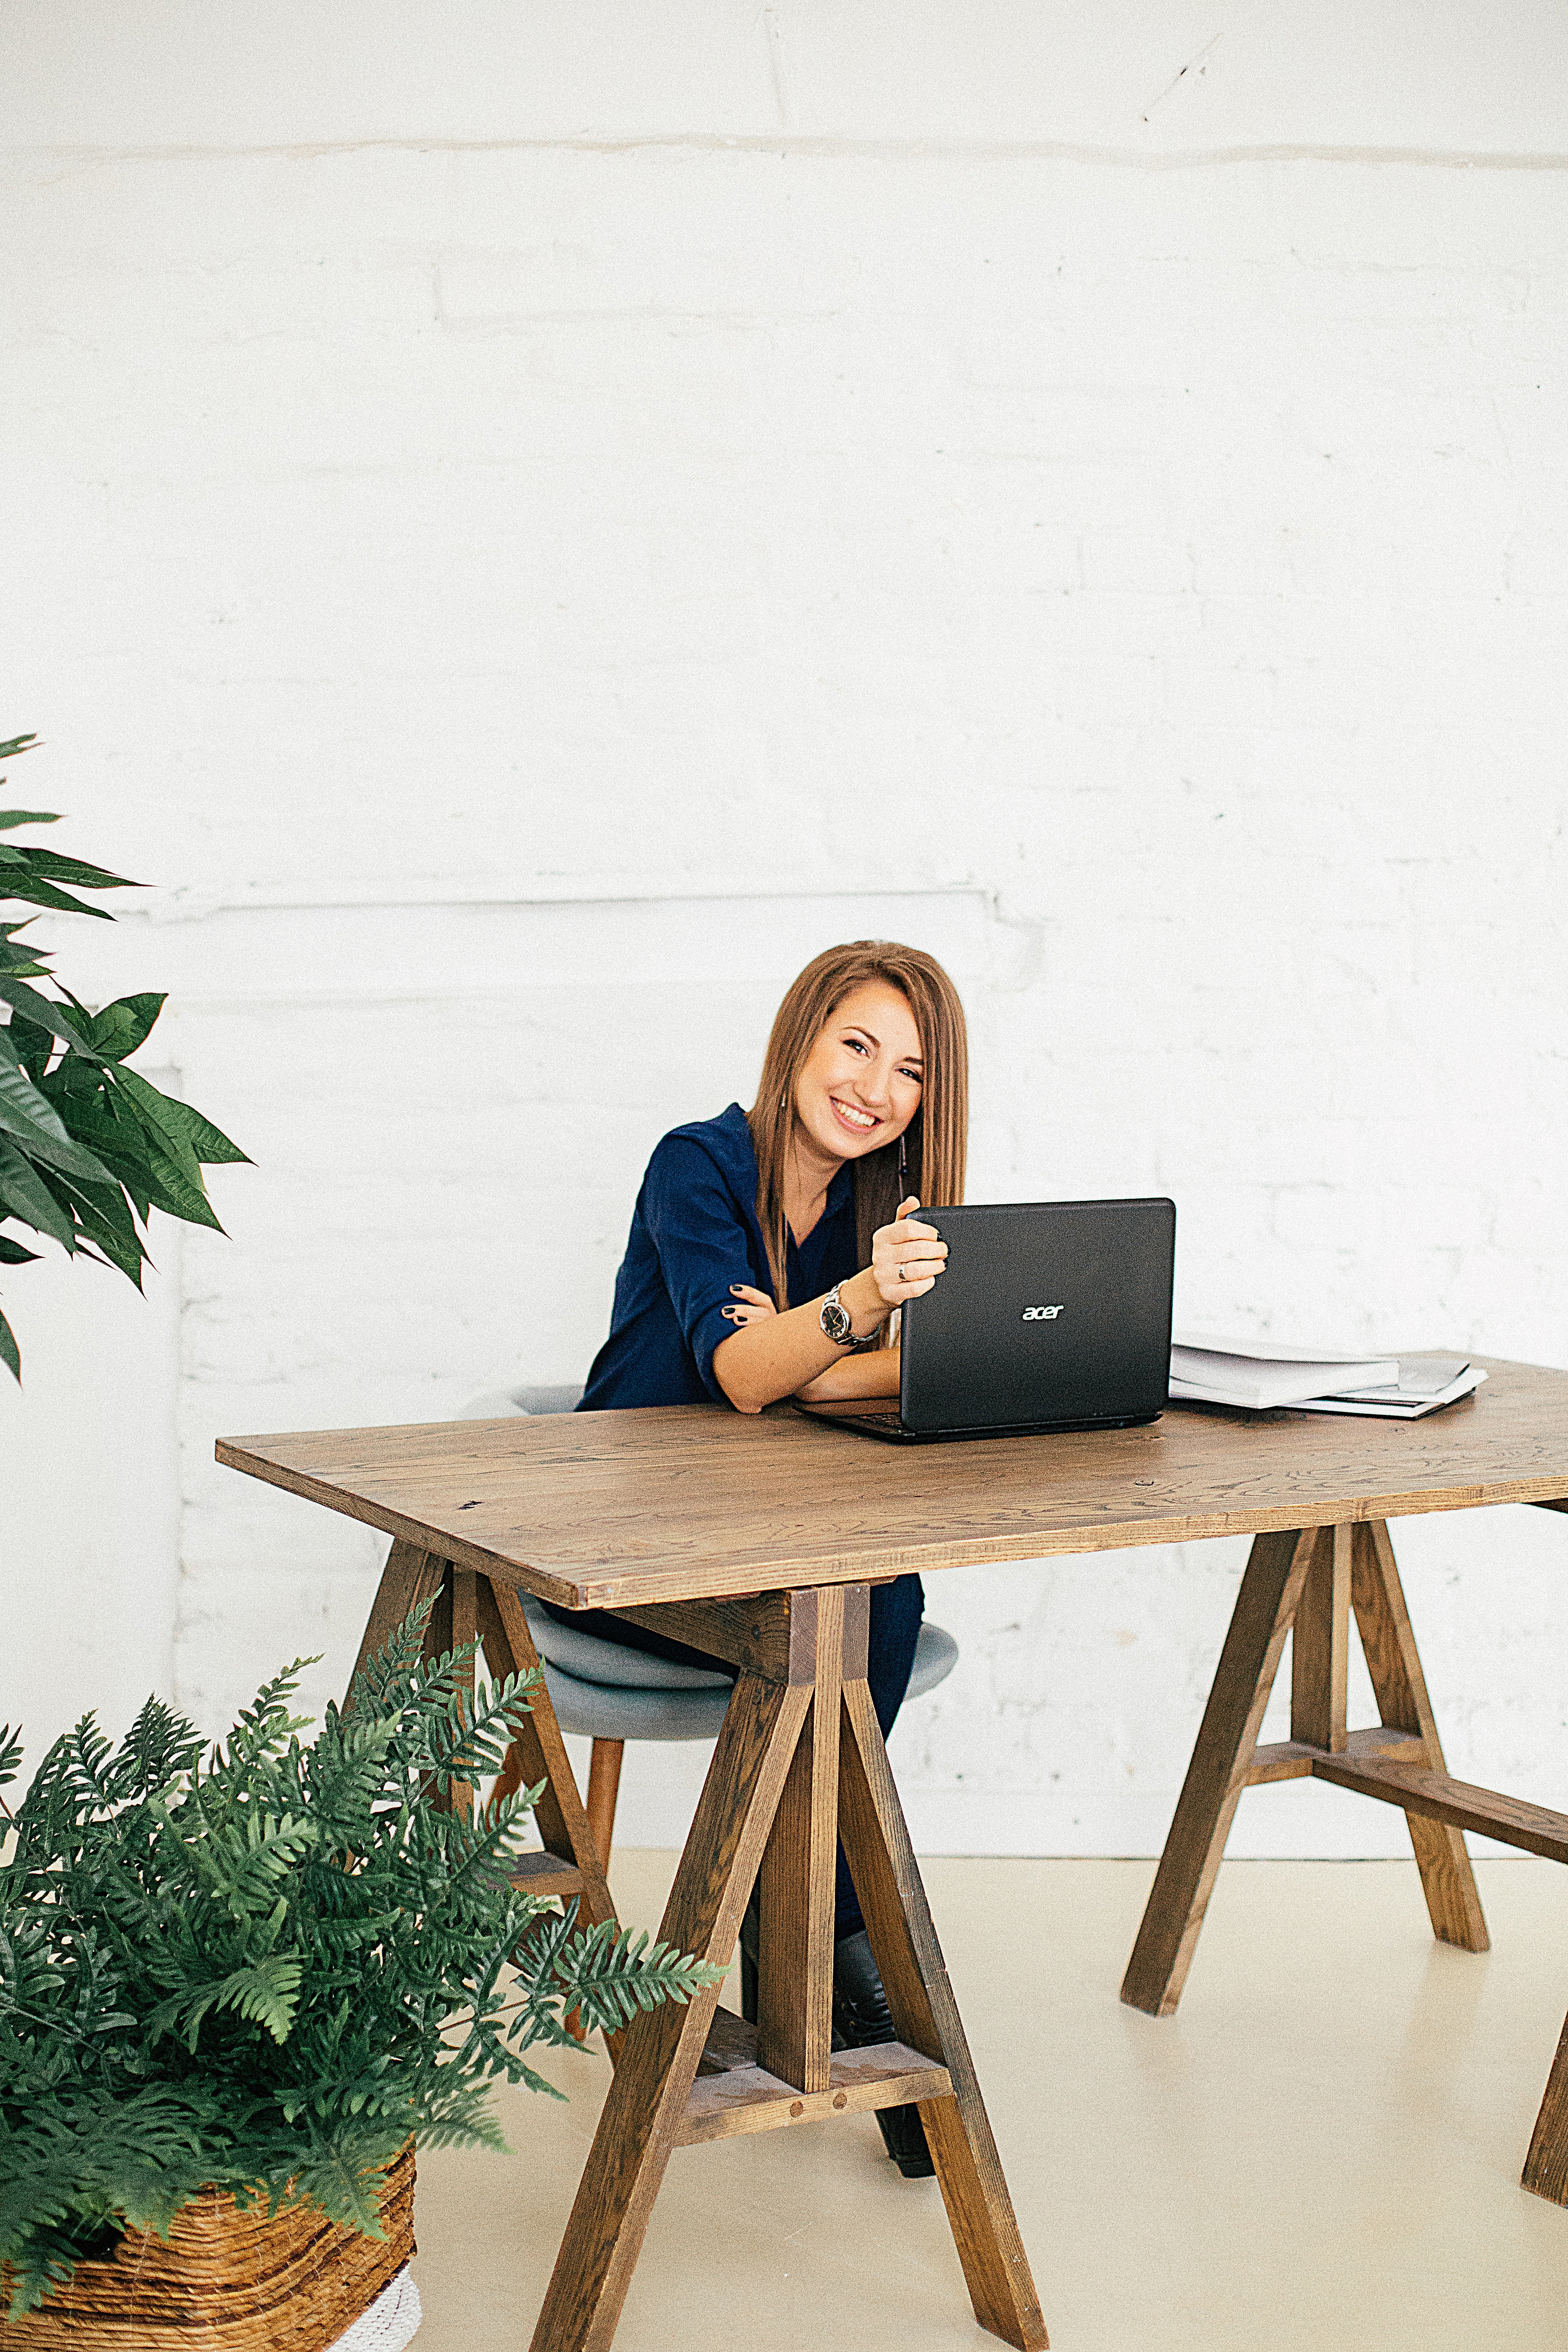 woman-in-wooden-table-using-computer-behind-white-wall-3681589